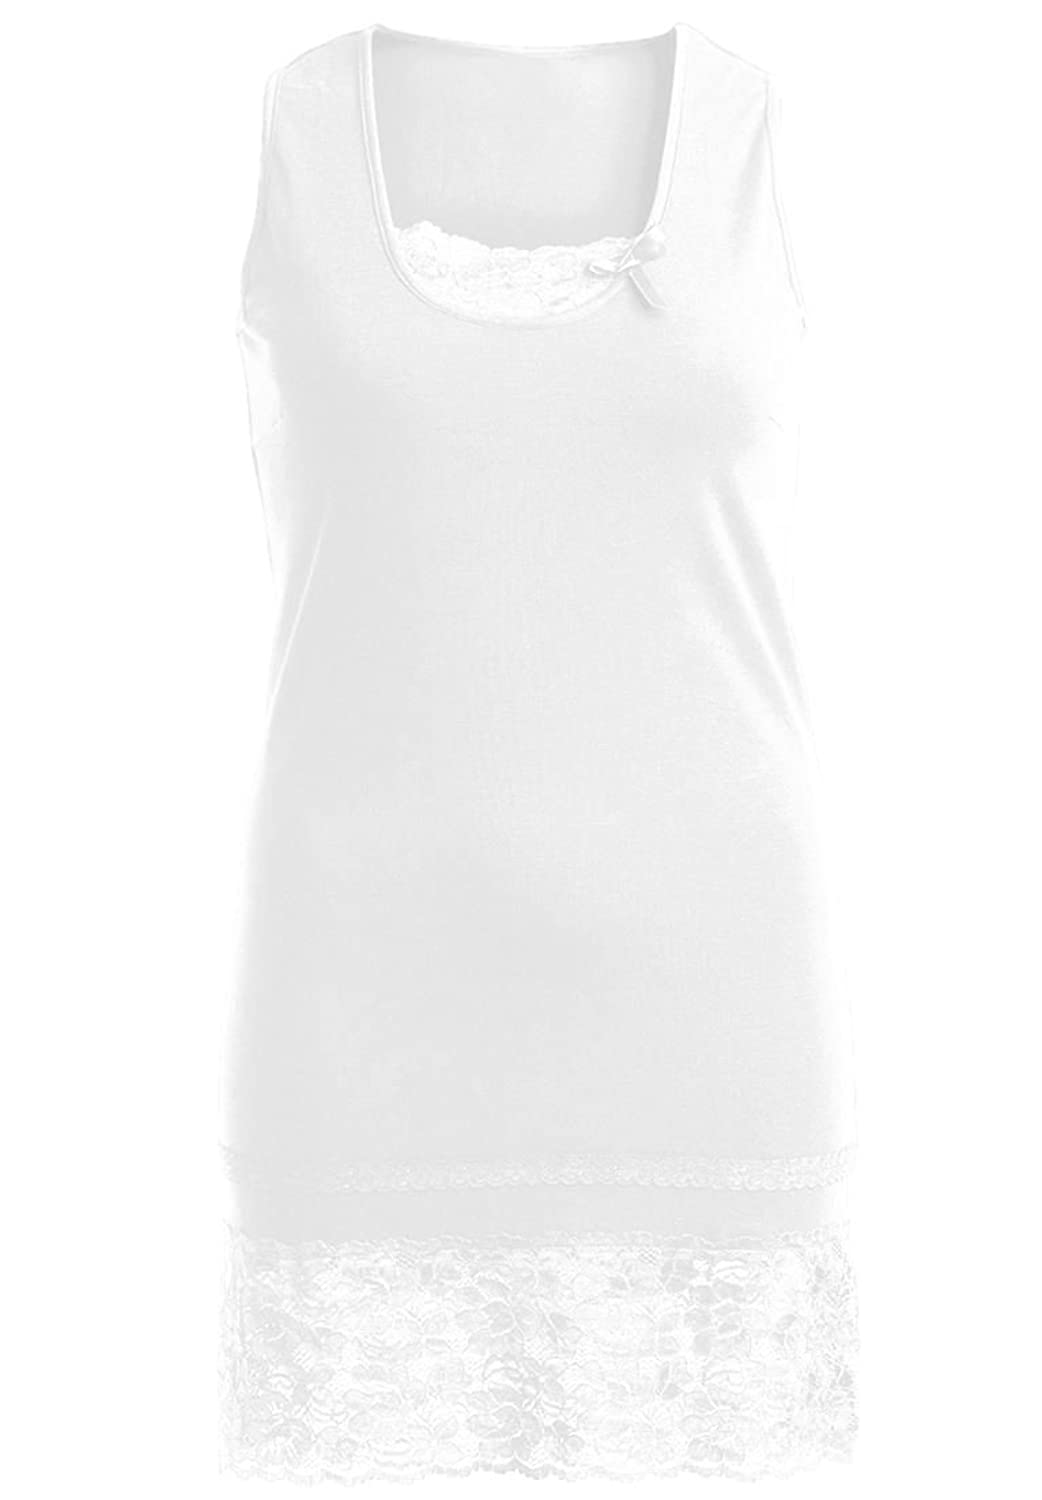 Ellos Women's Plus Size Top, Tank In Layered-Look With Lace From Ellos